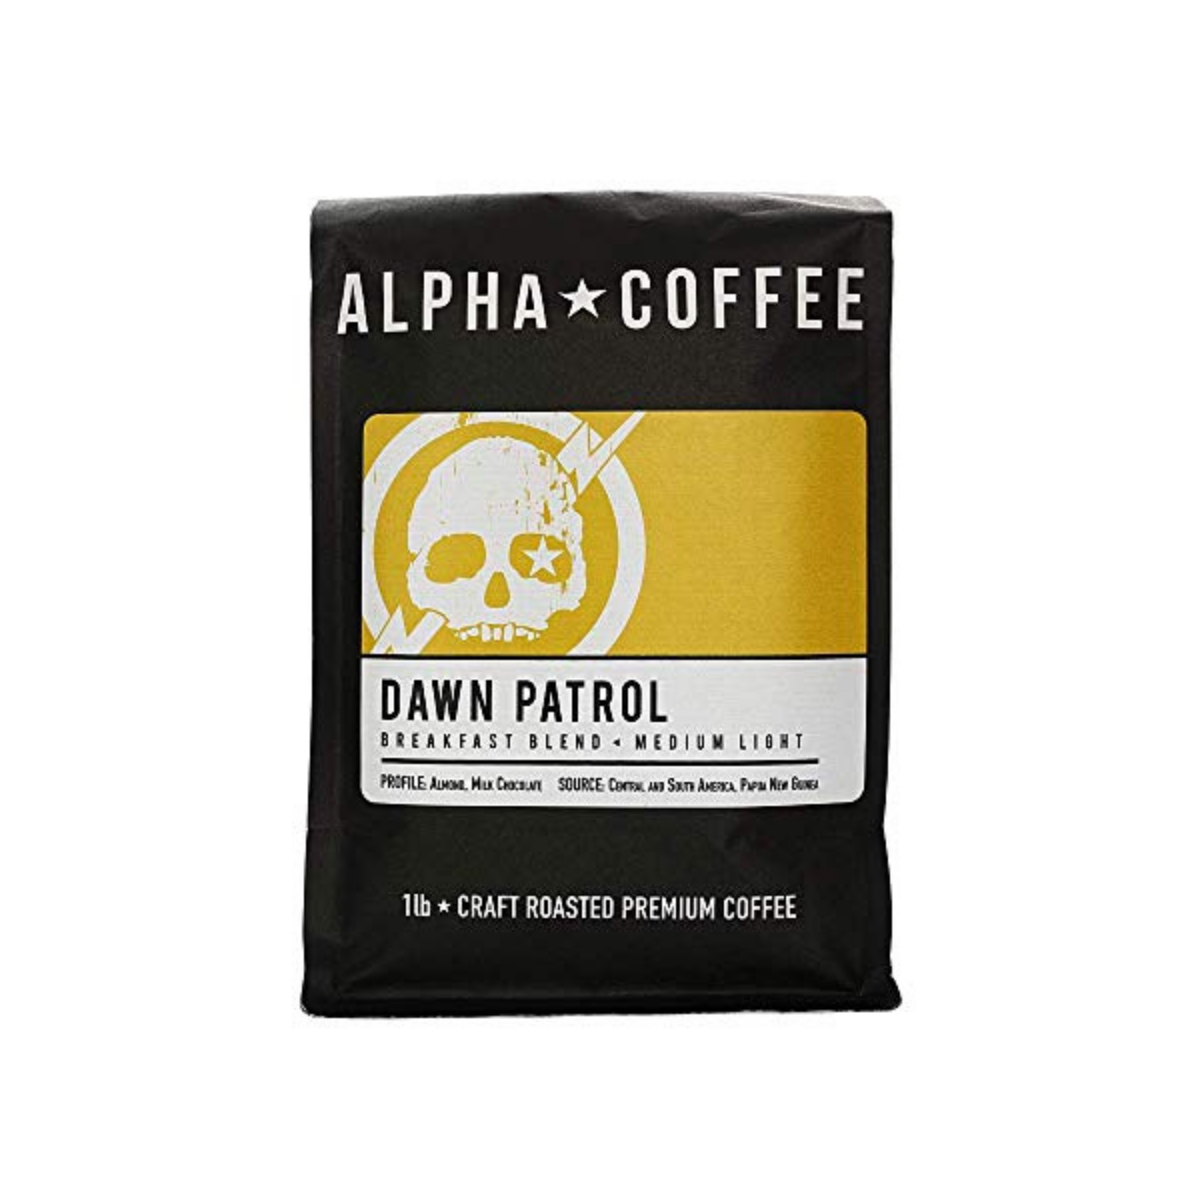 Alpha Coffee - Dawn Patrol - 1 LB Premium Gourmet Craft Light Roast Drip Grind Coffee | Veteran Owned - Specialty Small Batch Roasted Coffee | 100% Arabica Beans (Breakfast Blend)